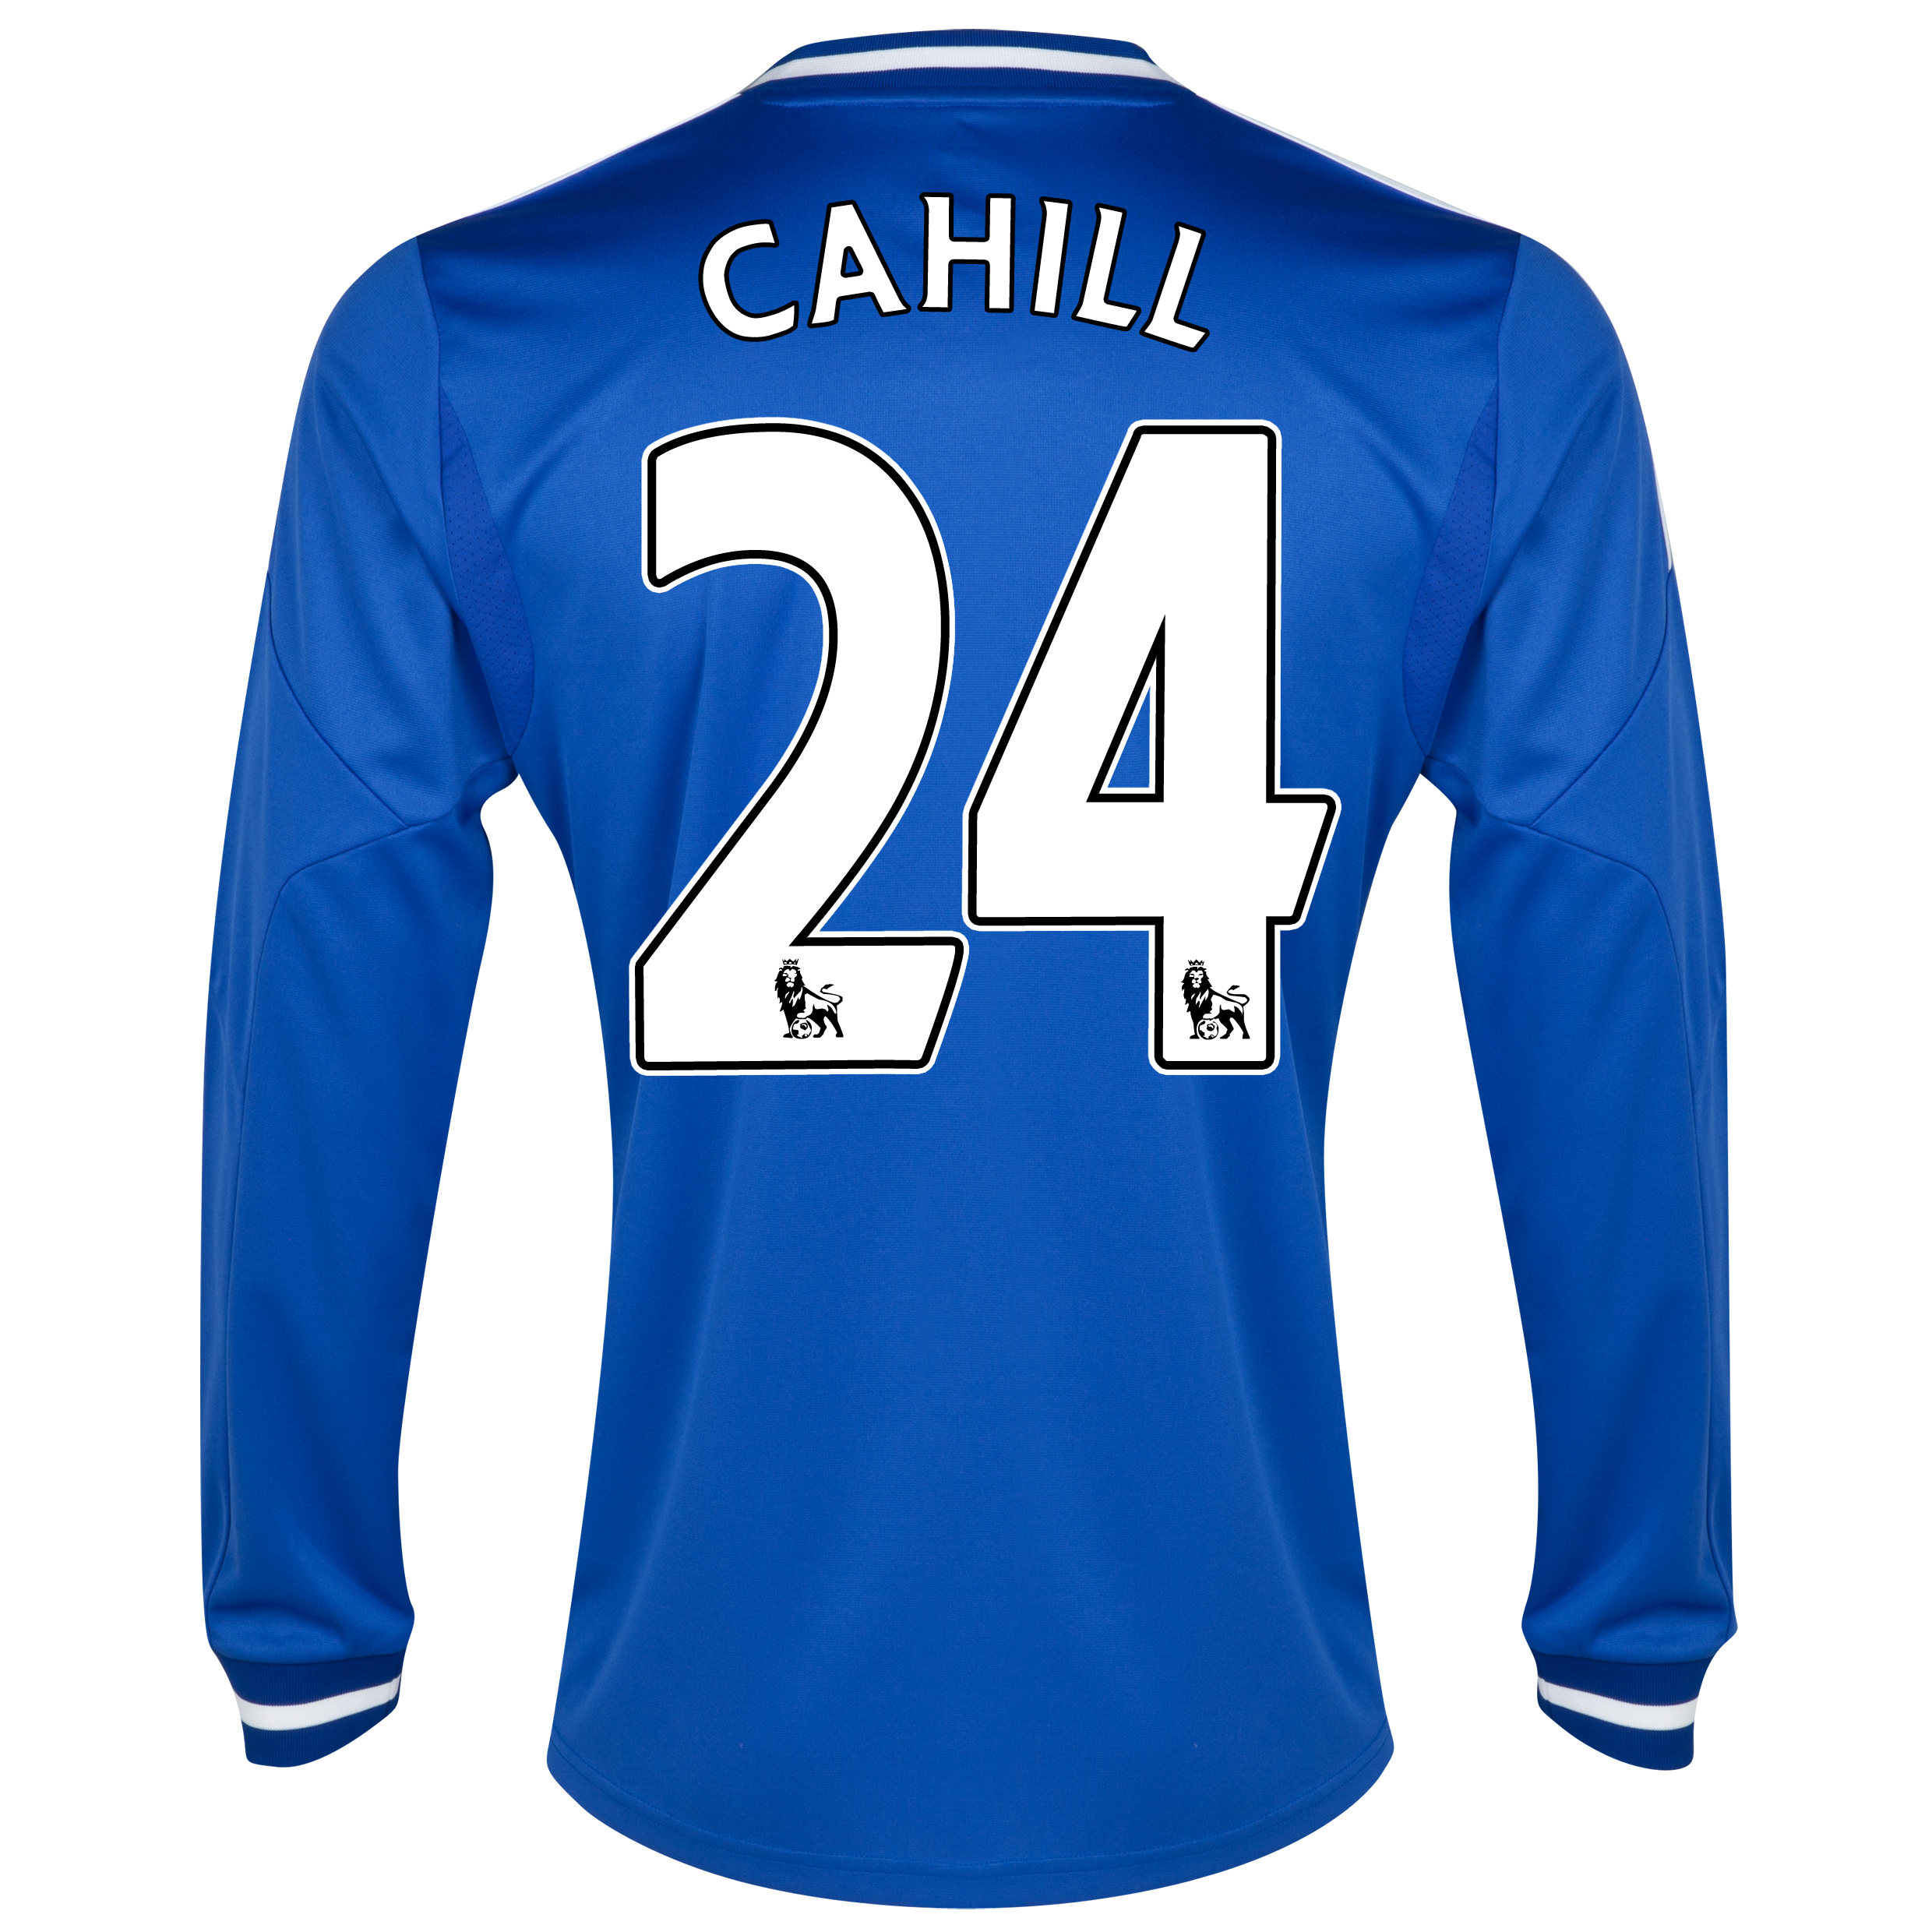 Chelsea Home Shirt 2013/14 - Long Sleeve with Cahill 24 printing